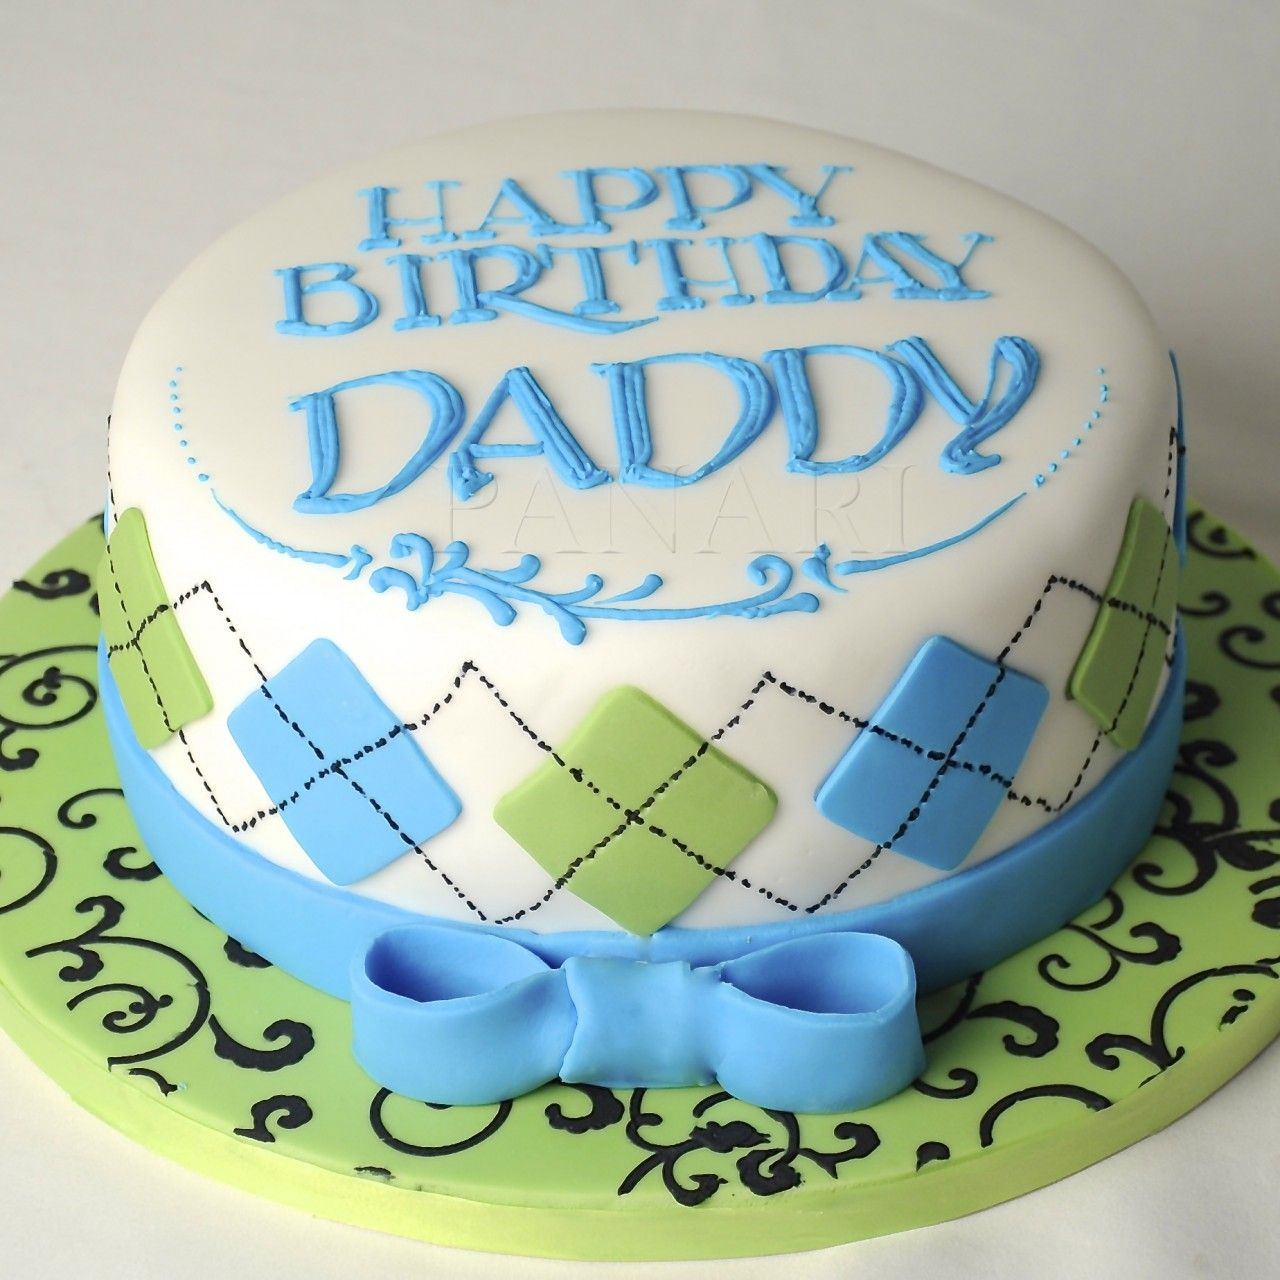 Argyle pattern cake cm0175 Happy birthday daddy Cake and Birthday